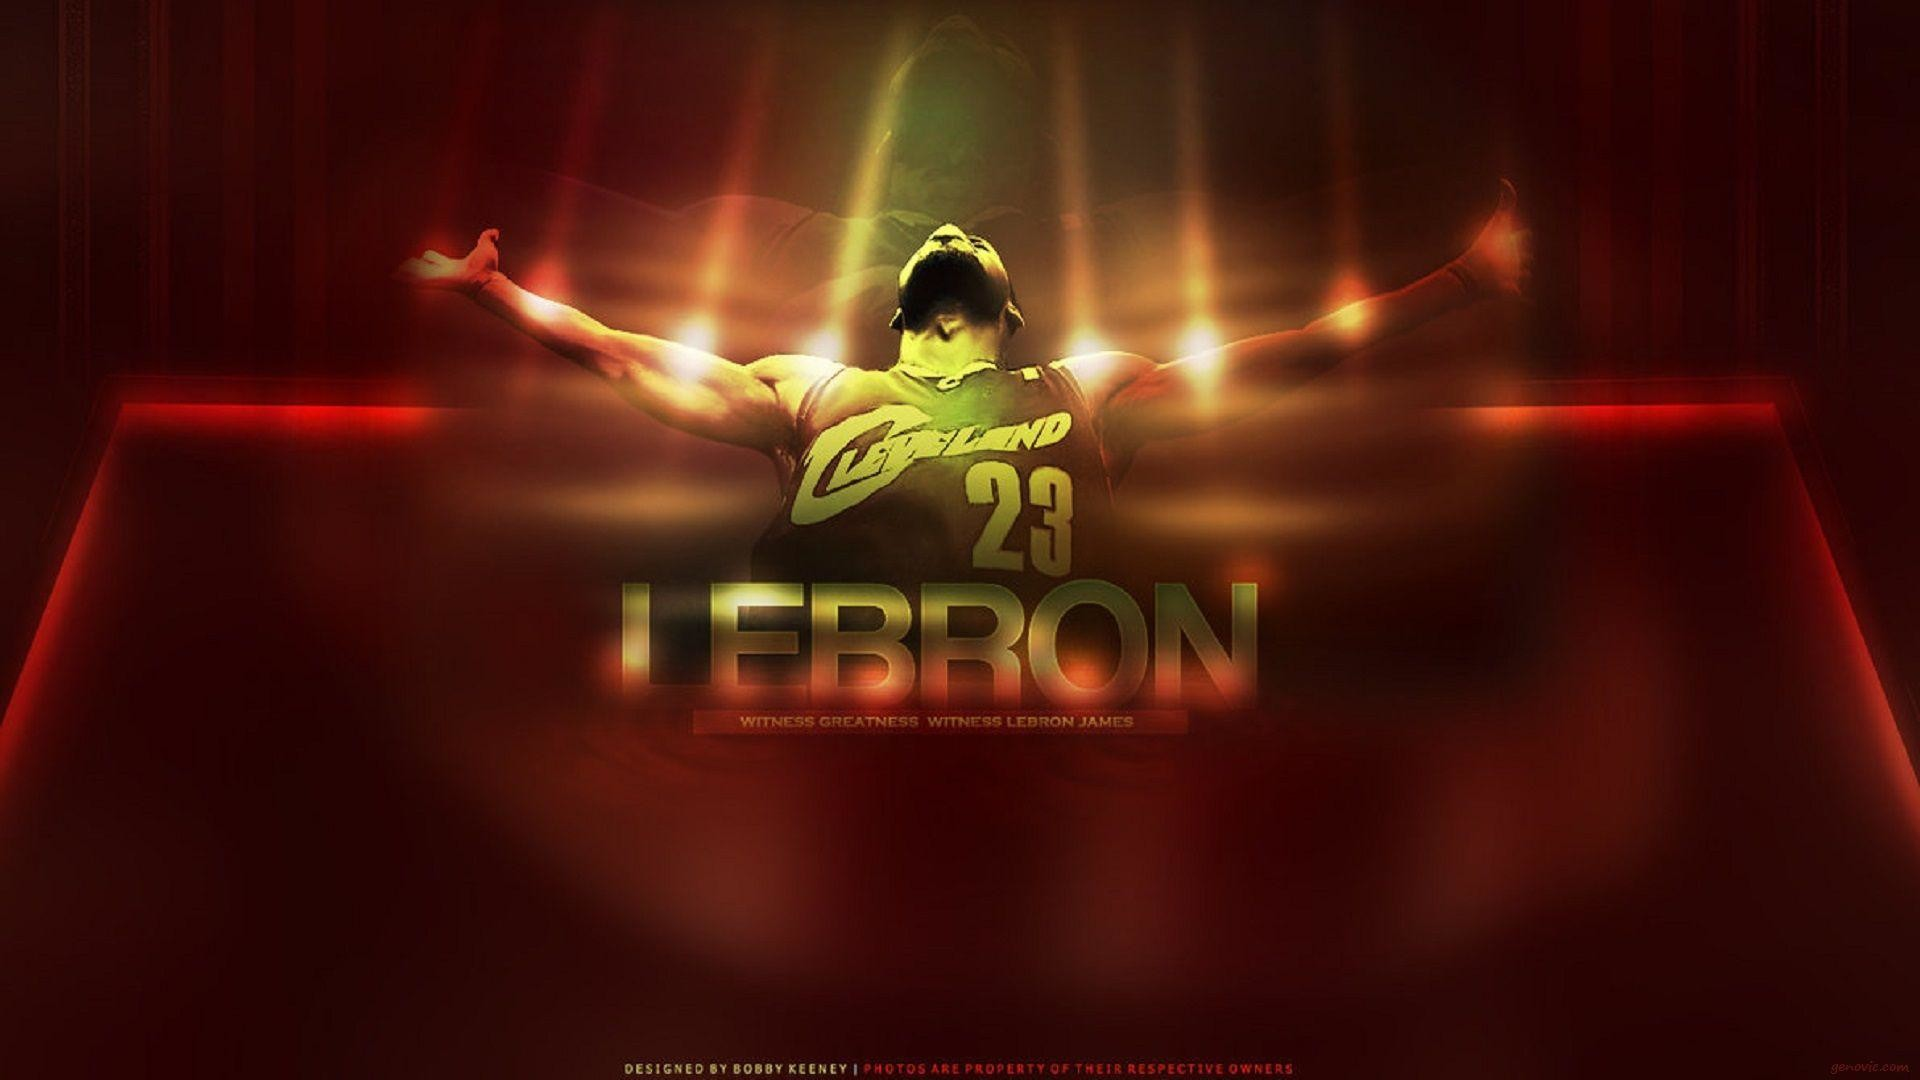 1920x1080 Lebron James Mvp Wallpapers 2016 - Wallpaper Cave